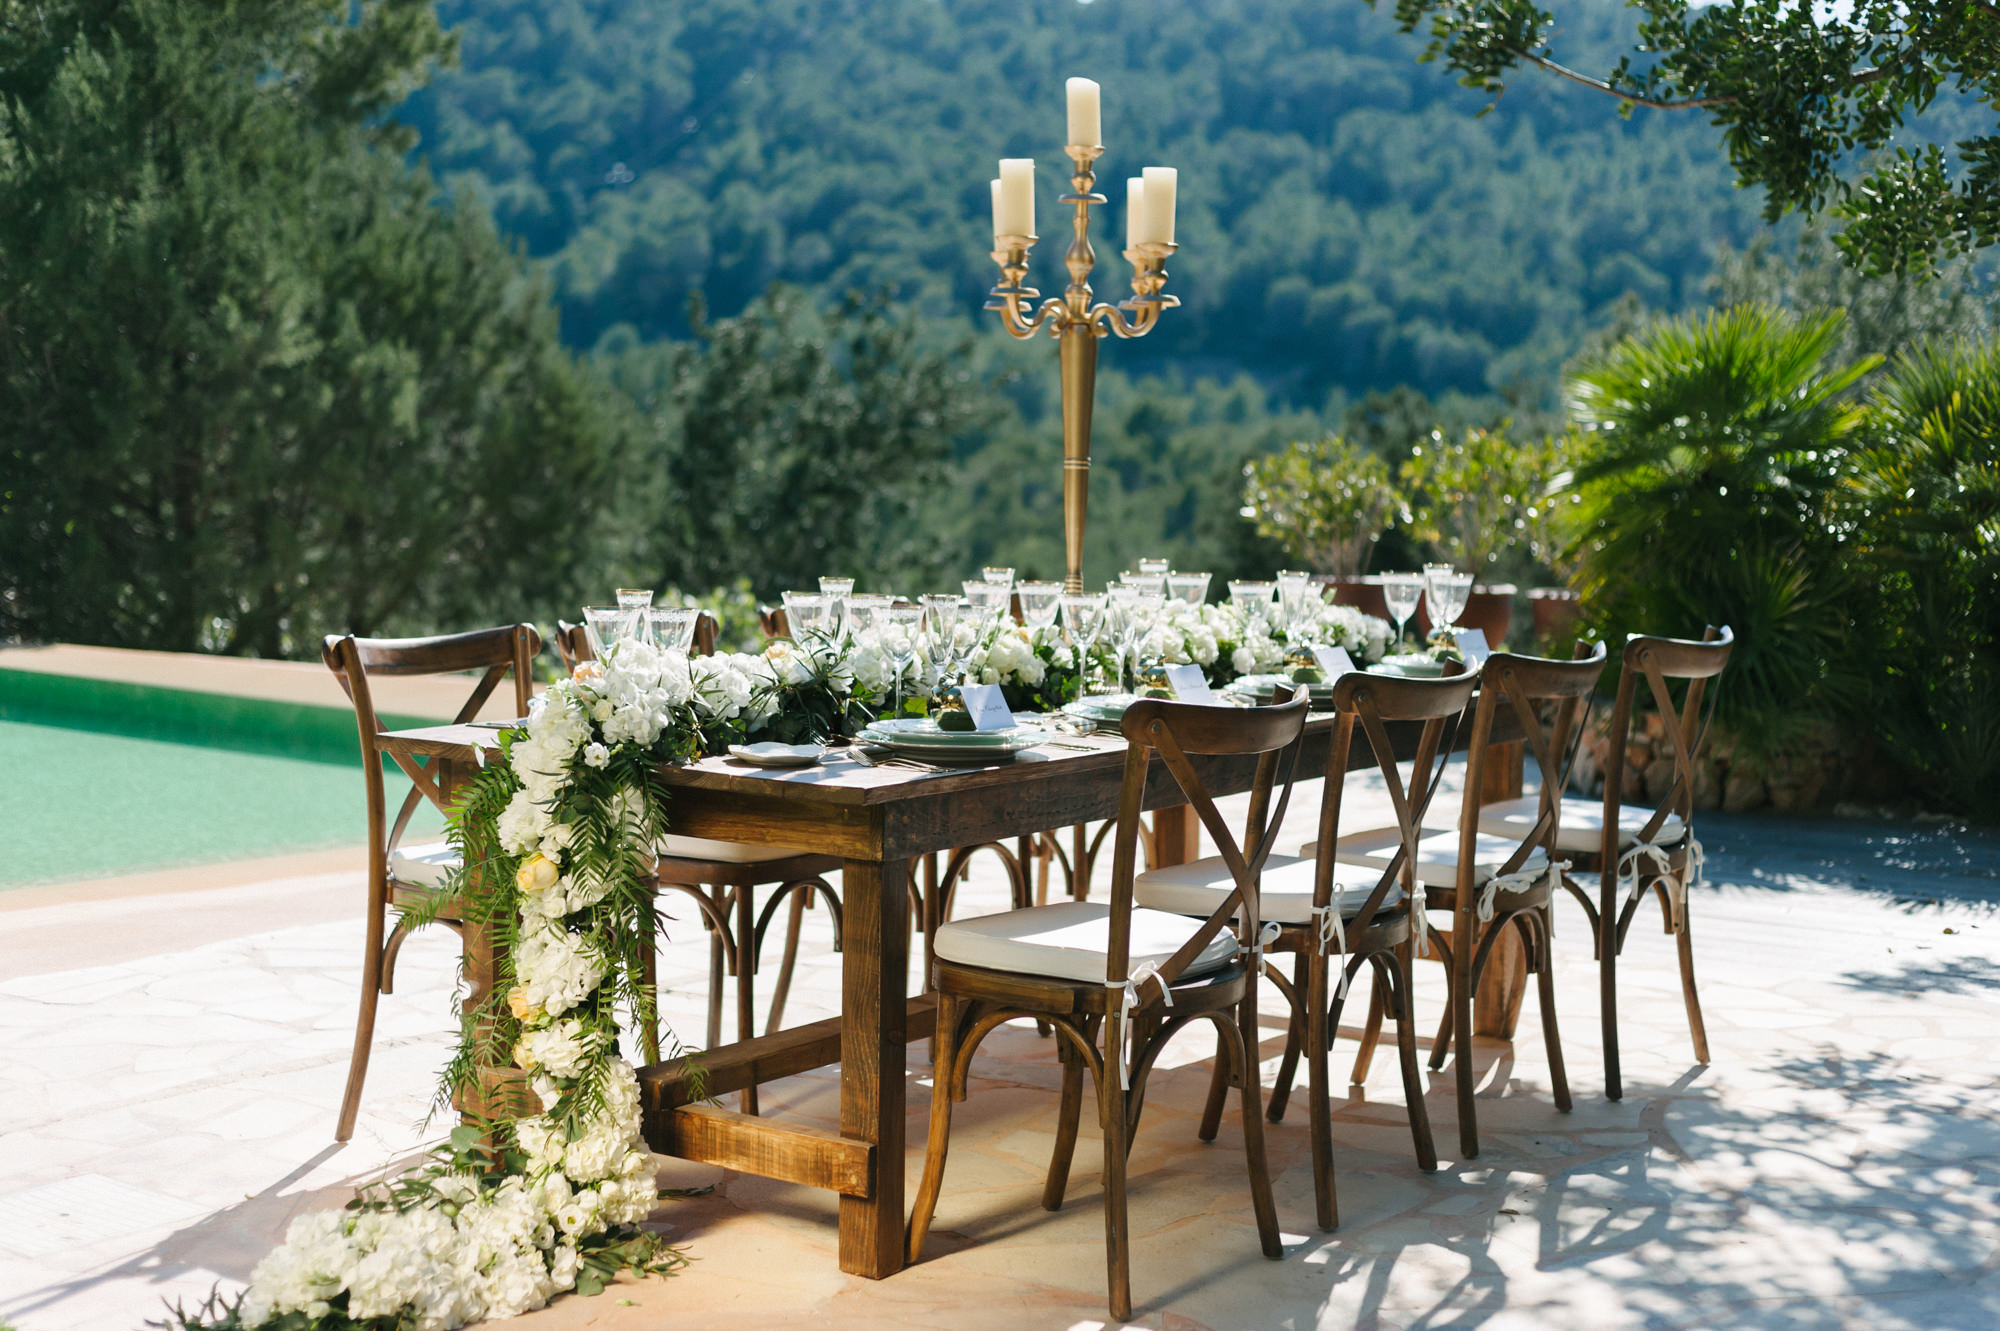 Ibiza Wedding Inspiration at Casa La Vista by Nigel Edgecombe